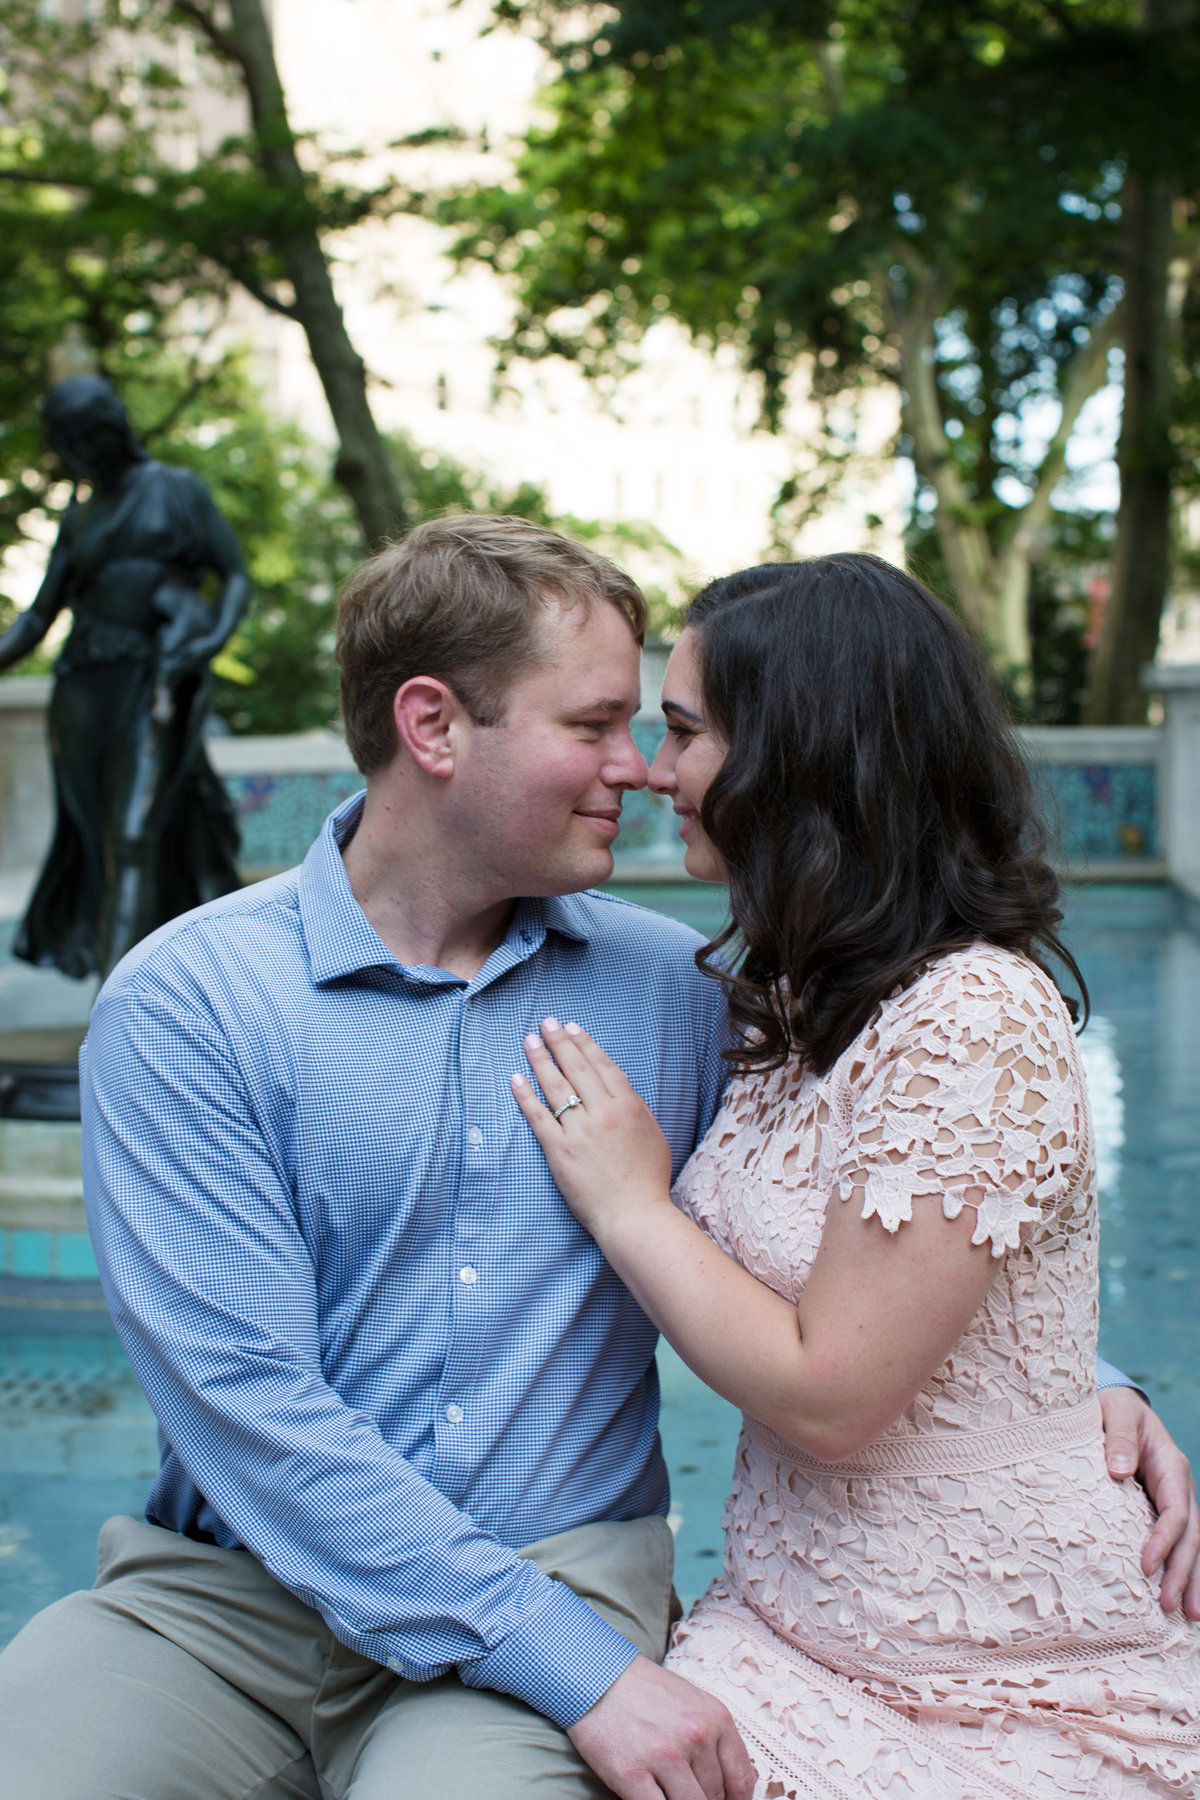 Rittenhouse-Square-Engagement-Mariya-Stecklair-Photography-93